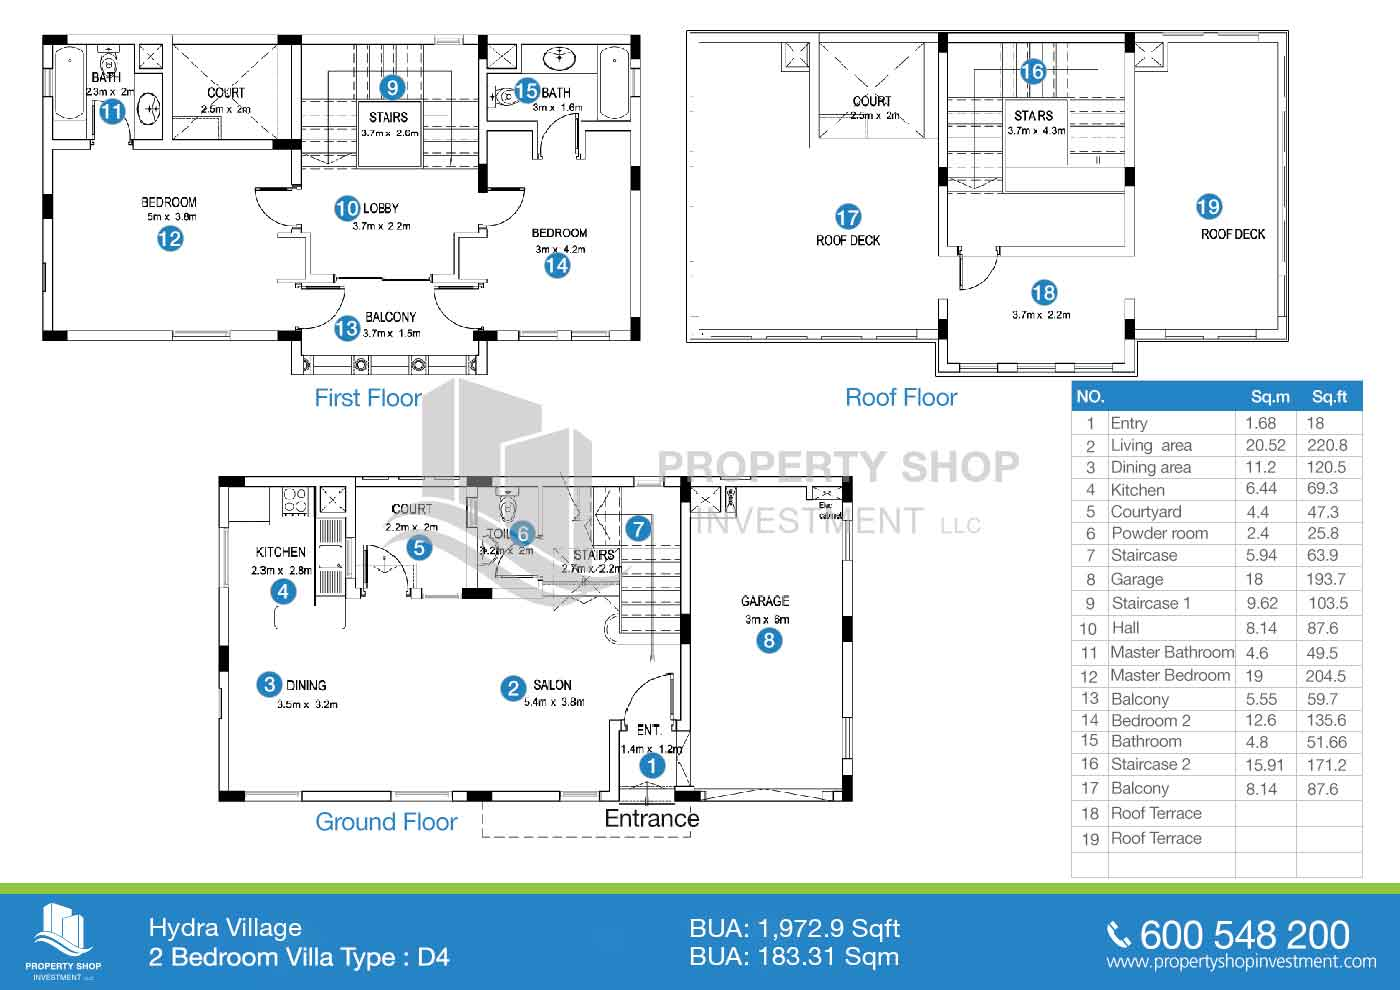 Hydra Village Abu Dhabi Diagram Labeled Pictures 2 Bedroom Villa Type D4 Area 19729 Sqft